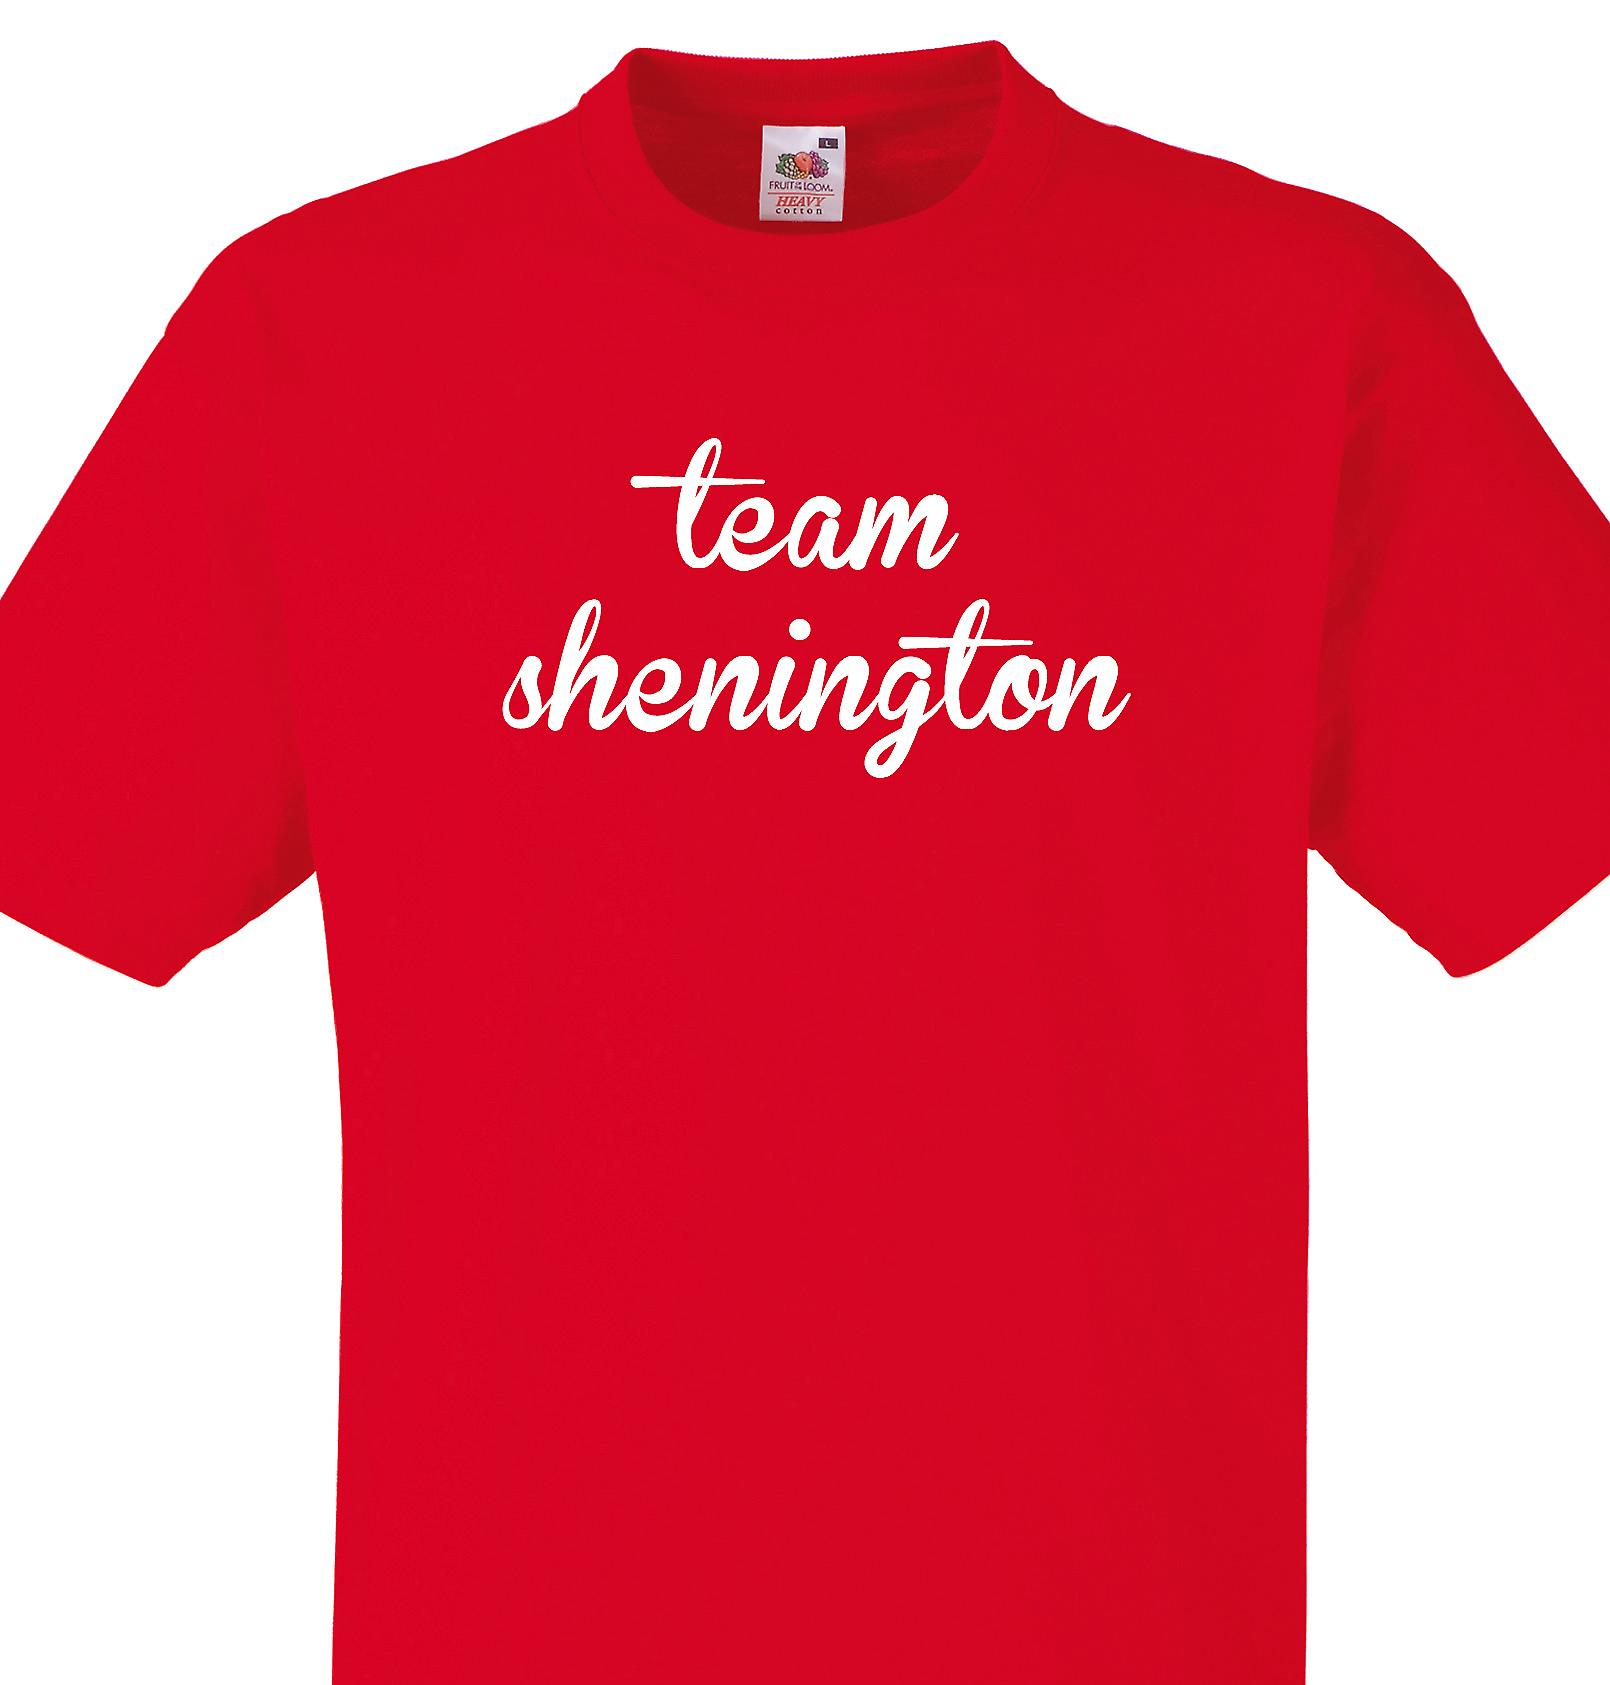 Team Shenington Red T shirt